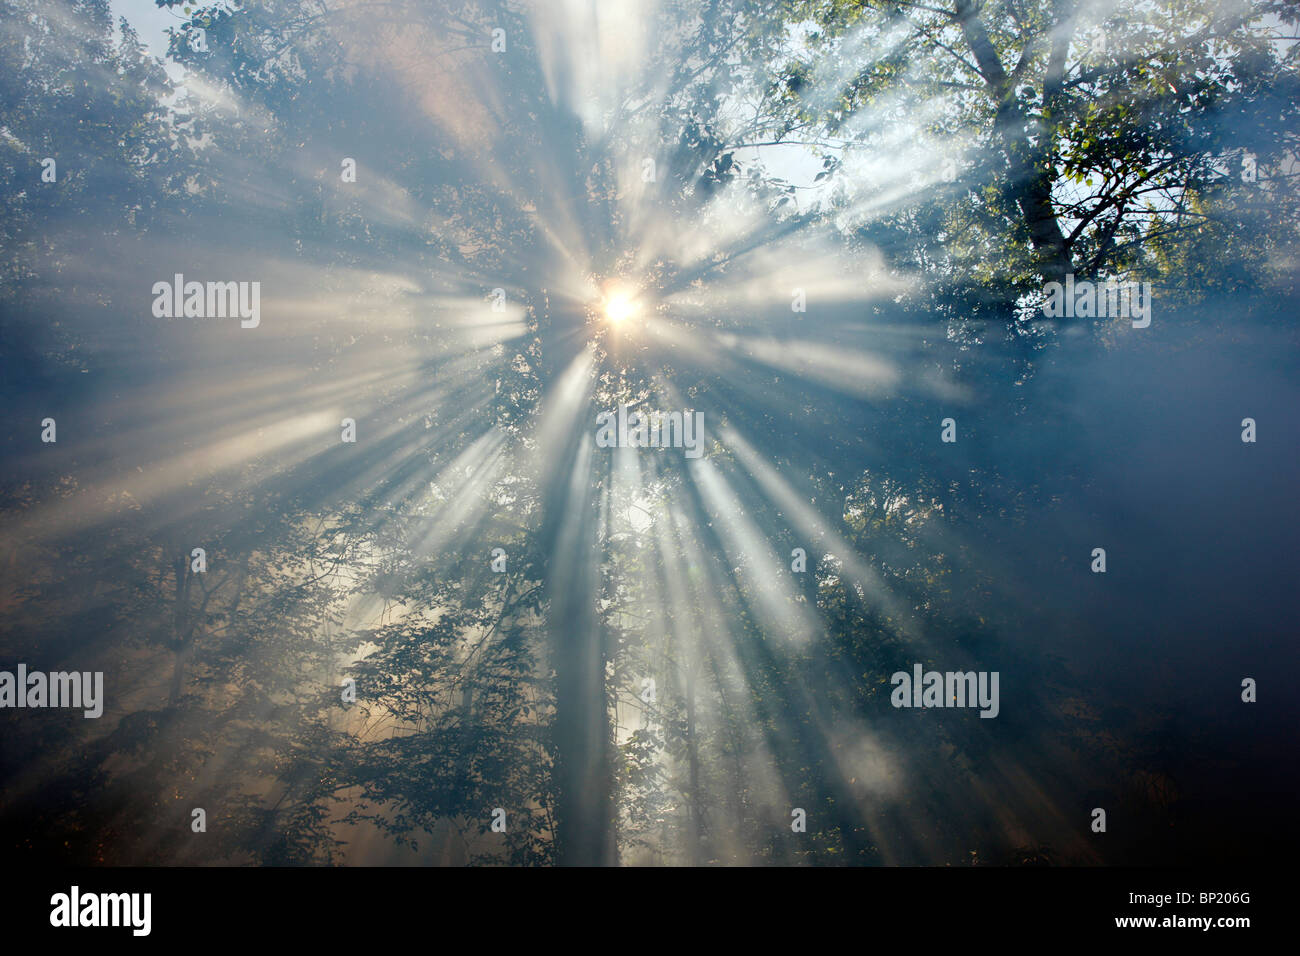 Smoke in a forest, sun comes slowly through the fume. - Stock Image